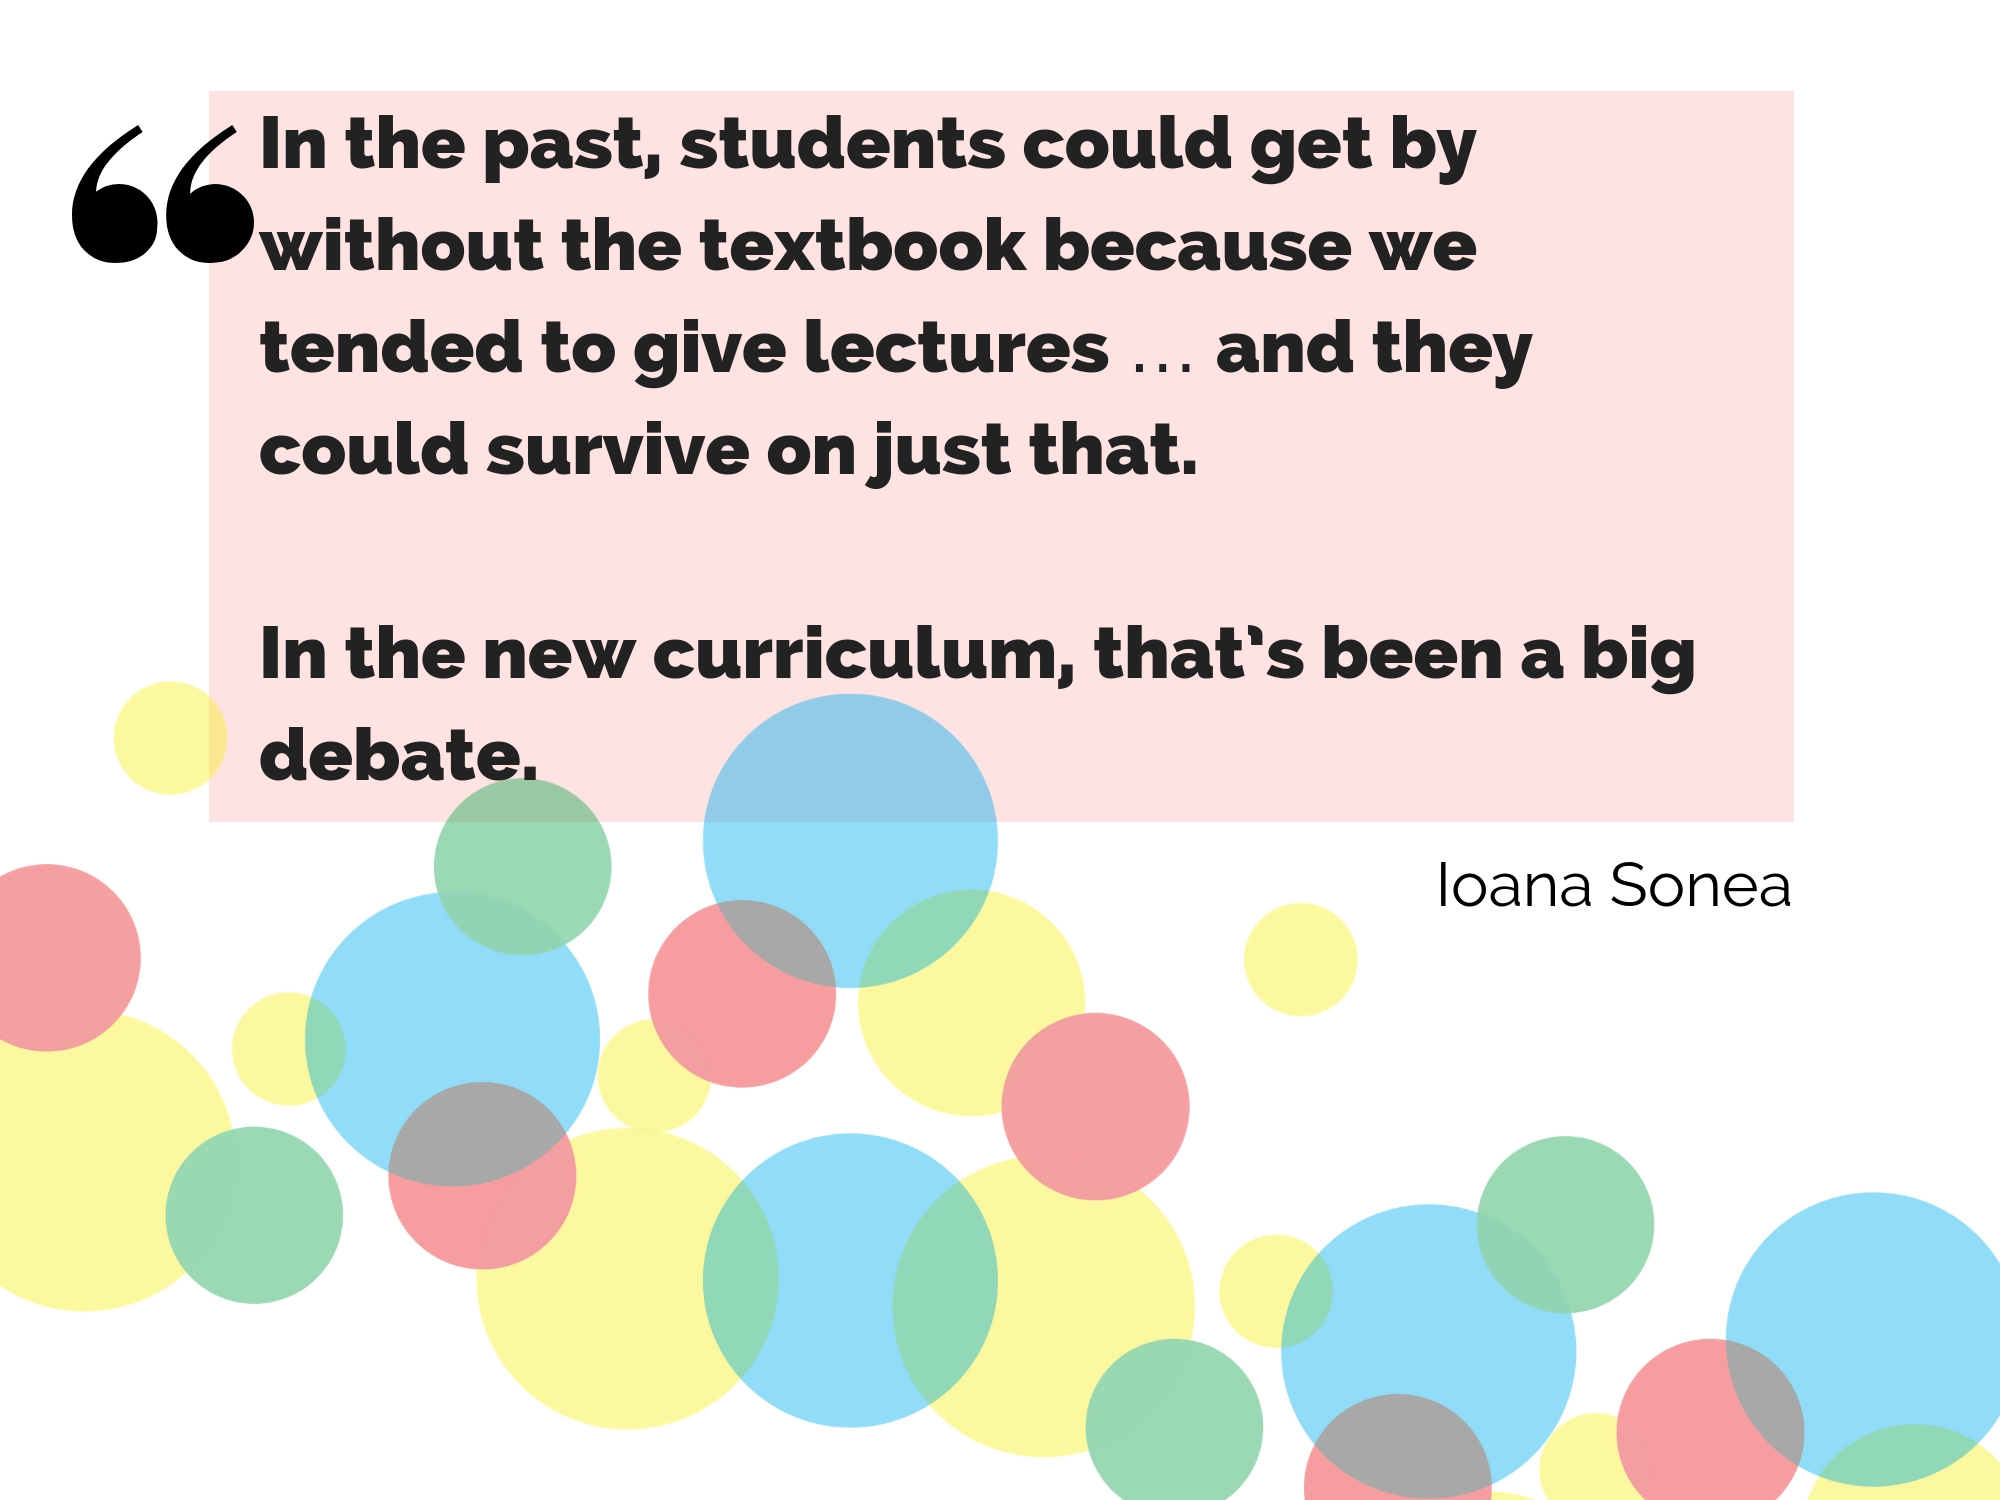 In the past, students could get by without the texbook becasue we tended to give lectures ... and they could survive on just that. In the new curriculum, that's been a big debate.